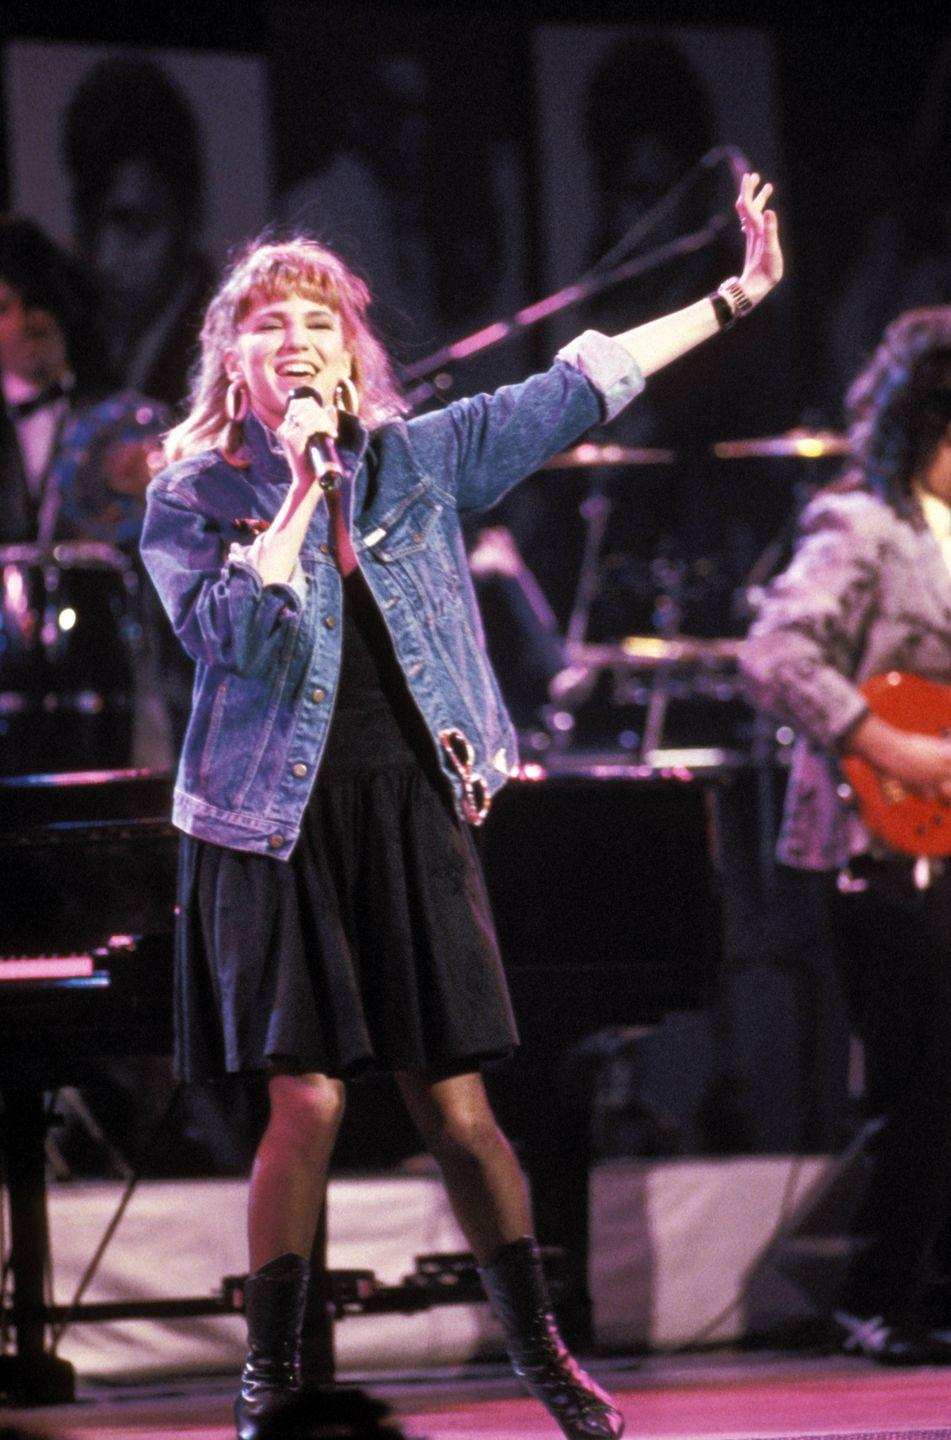 "<p>Gibson spent most of the '80s pumping out hits after the debut of ""Only in My Dreams."" One of her biggest successes, <em>Electric Youth, </em>spent five weeks at No. 1 on the Top 200 Album chart. The teen pop superstar graced the cover of <em>Tiger Beat </em>and <em>YM. </em>Her trademark style of tight jeans and vests over T-shirts became part of quintessential '80s fashion.<br></p>"